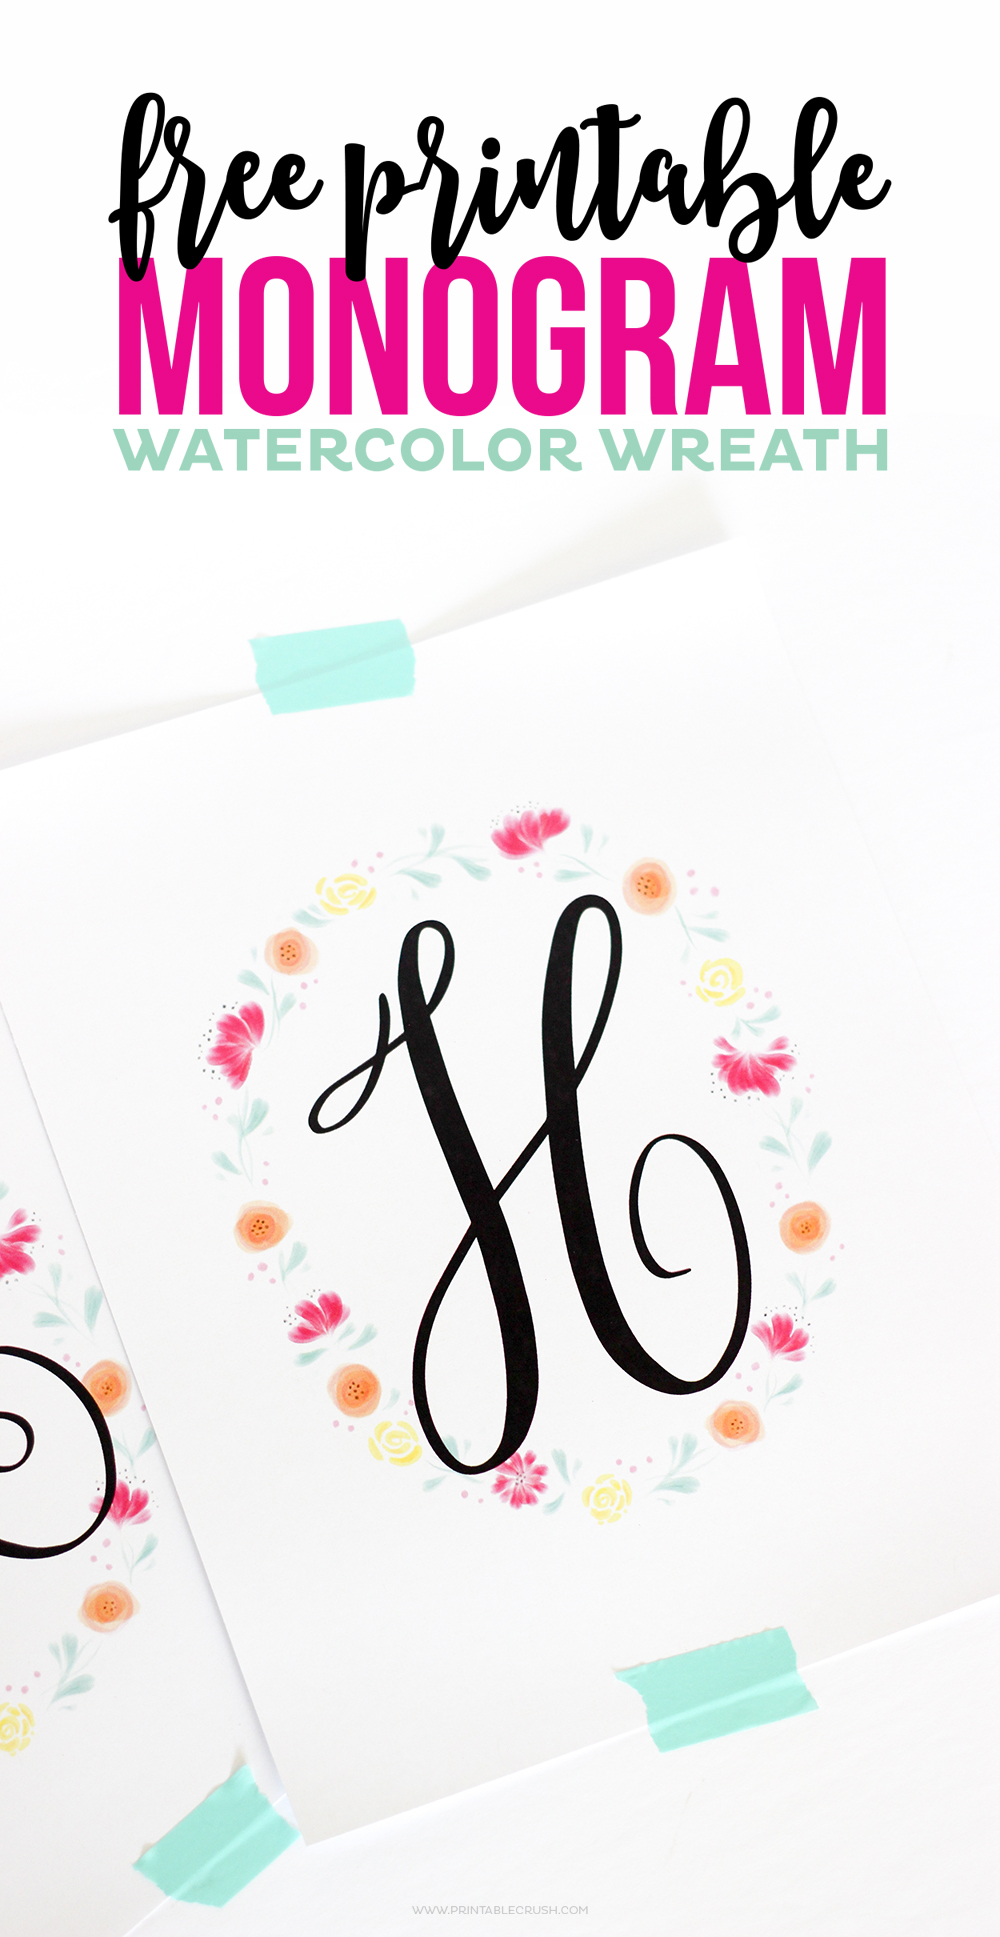 image regarding Free Printable Monogram referred to as No cost Printable Watercolor Monogram Wreaths - Printable Crush